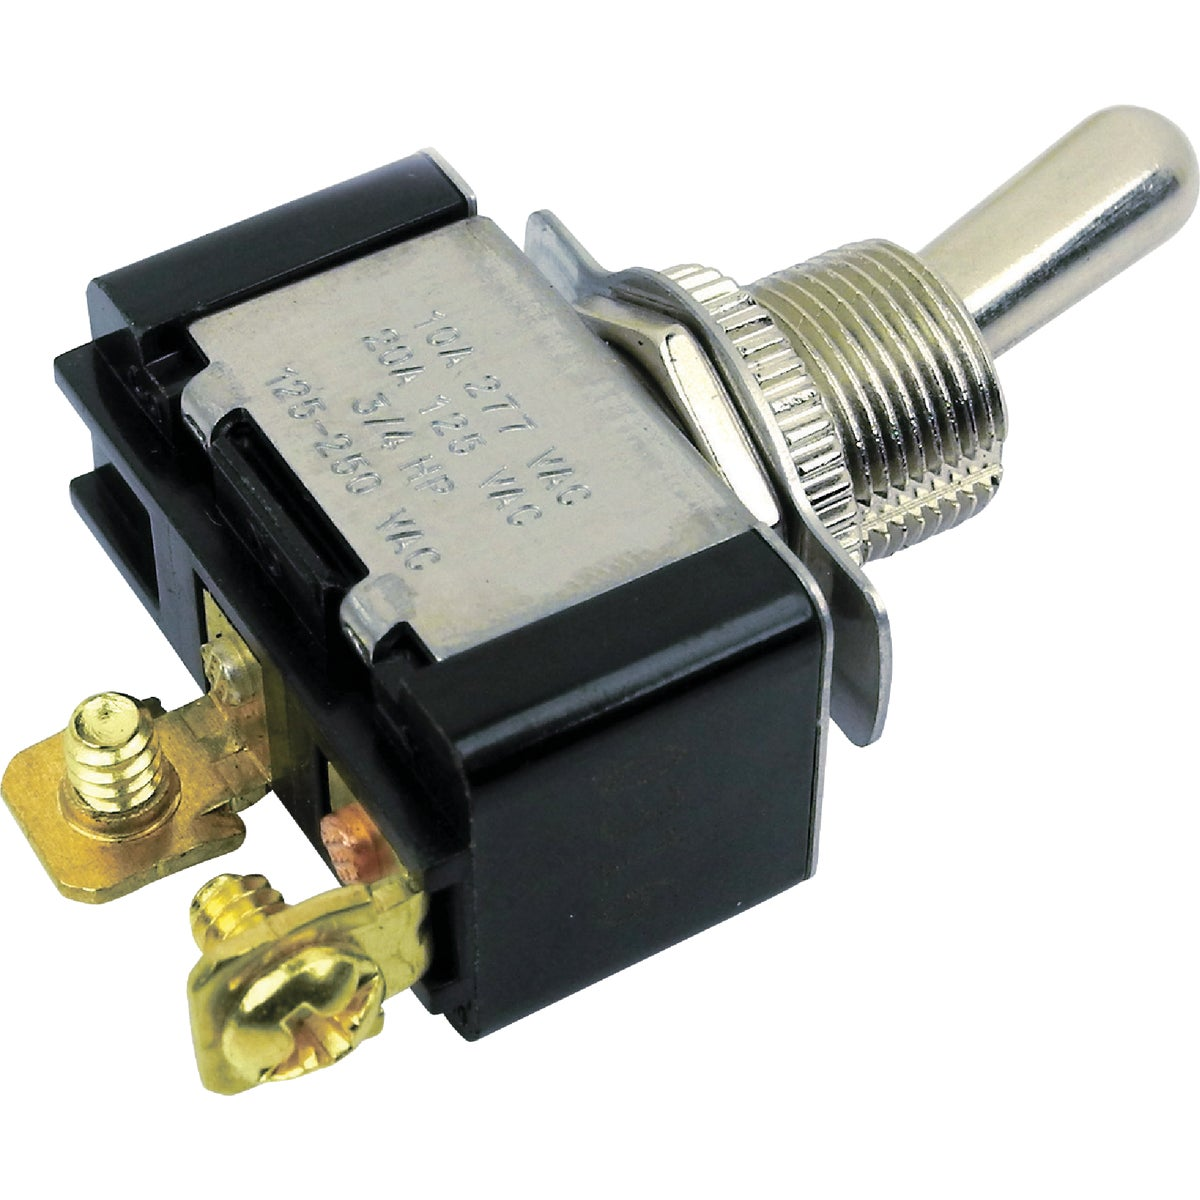 2POS TOGGLE SWITCH - 12101 by Seachoice Prod